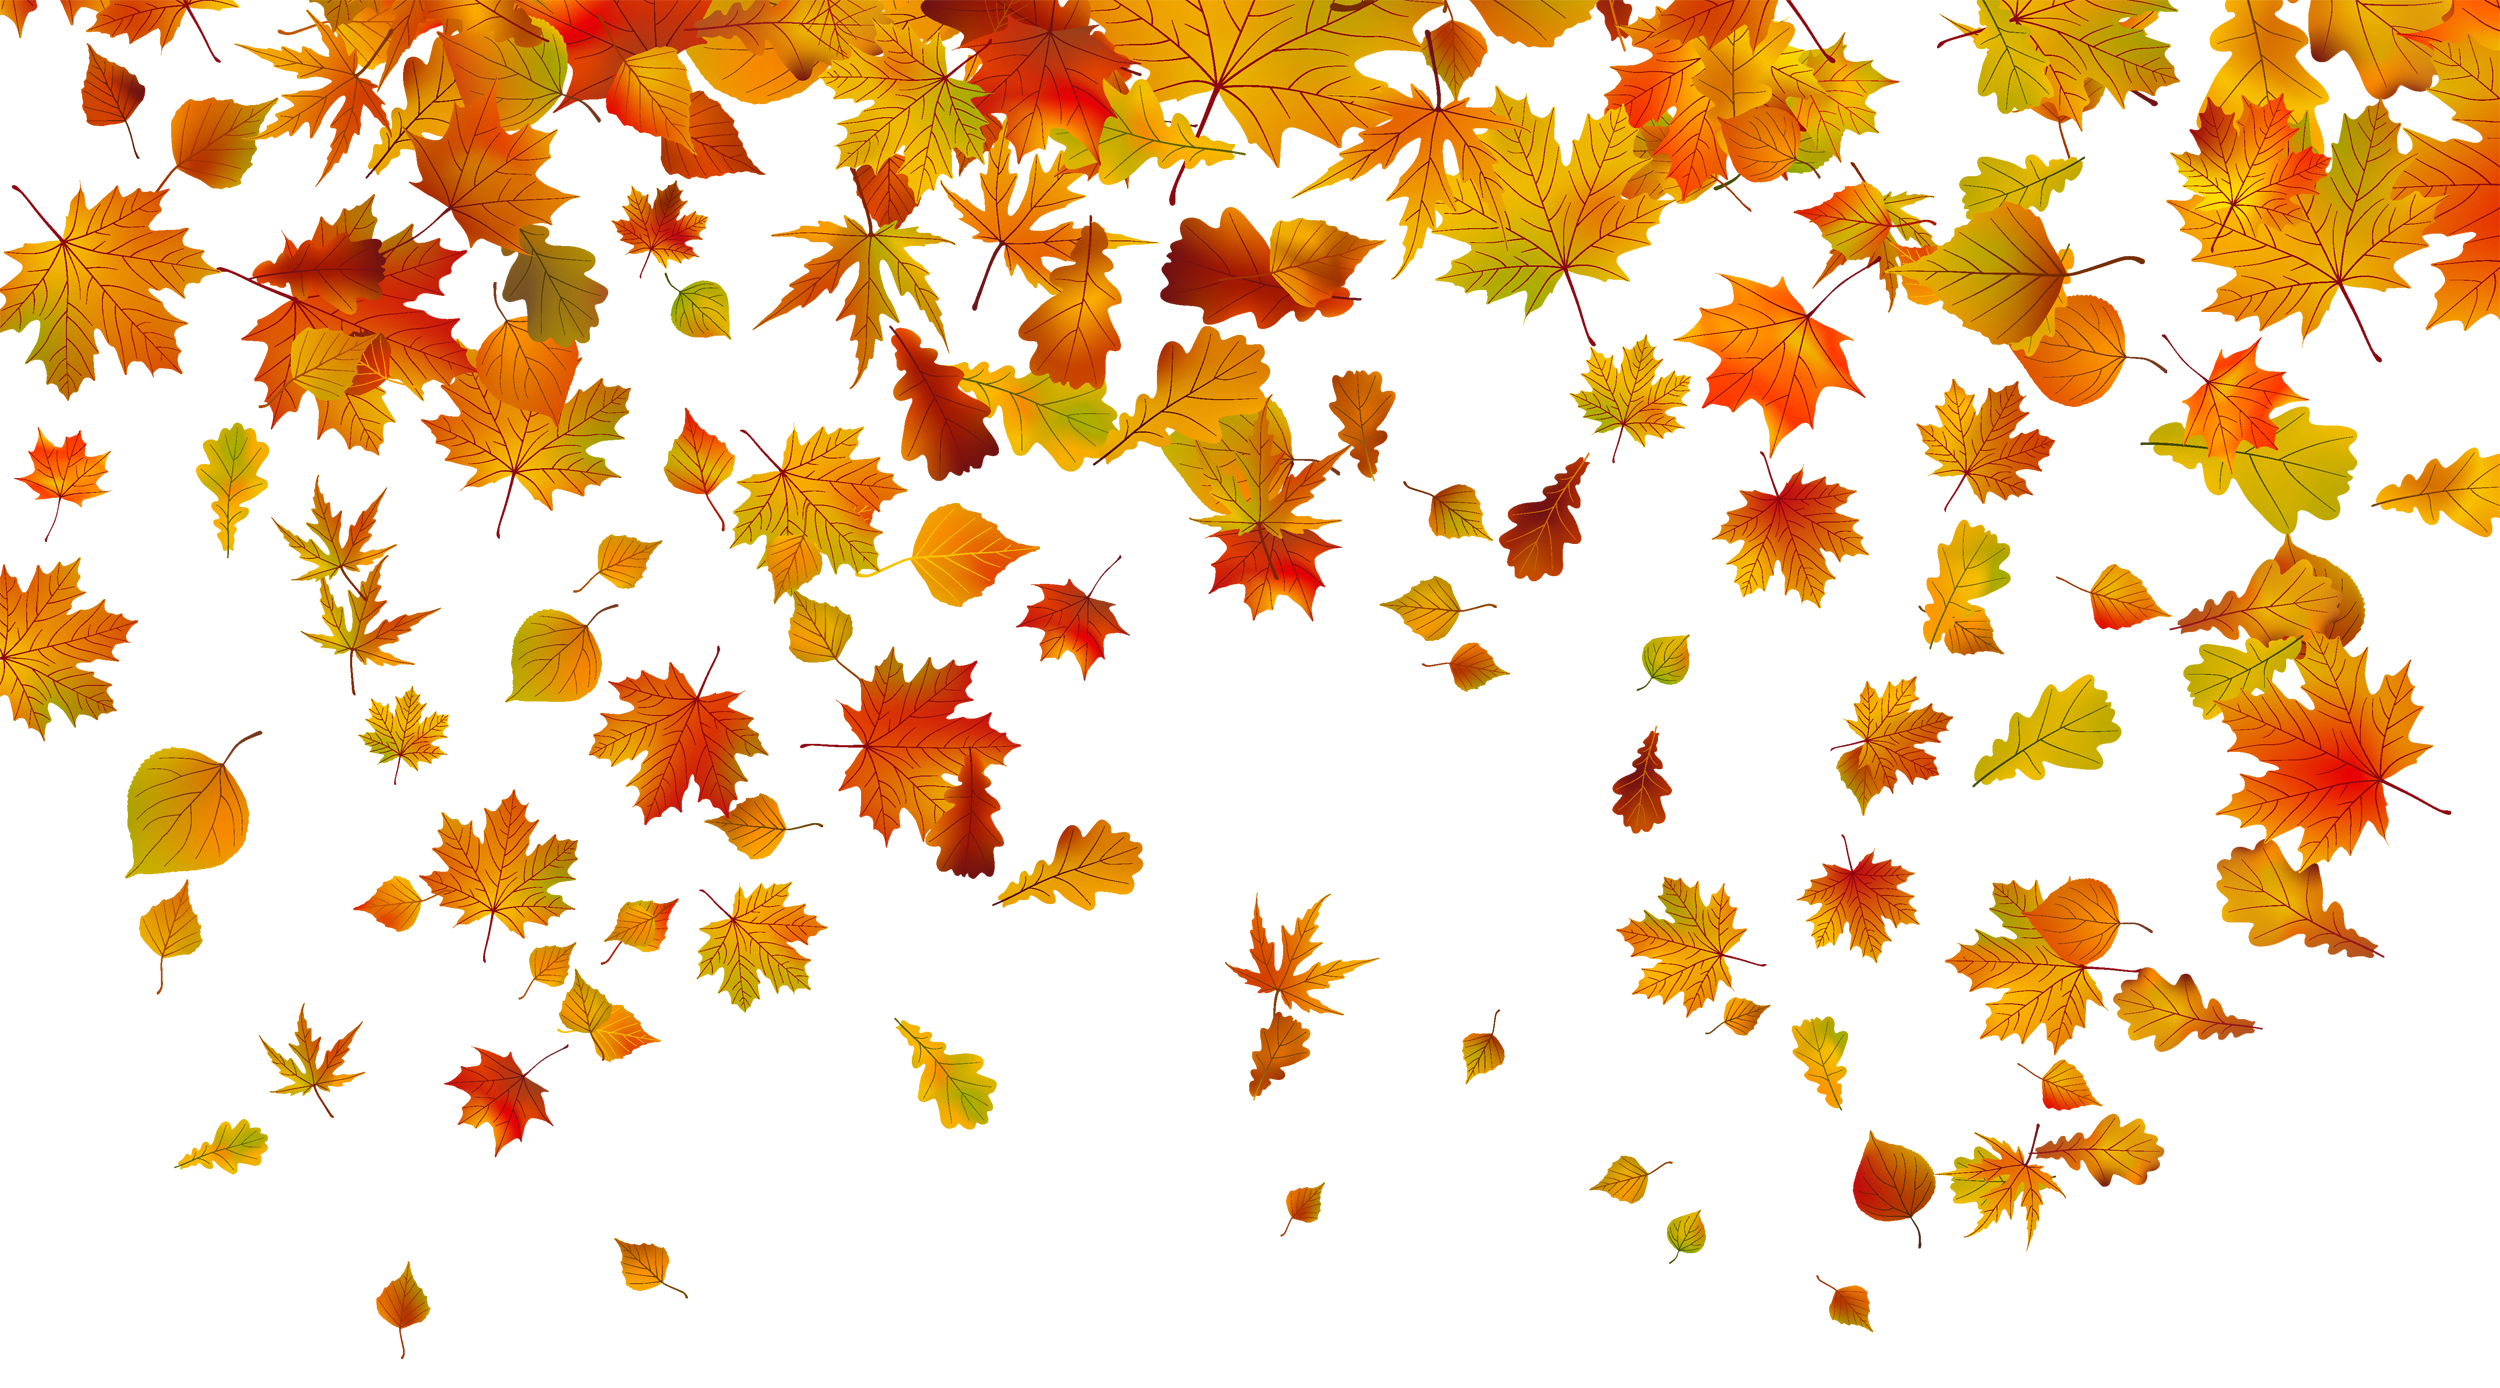 Fall Border Free Clipart With Transparent Background Png.